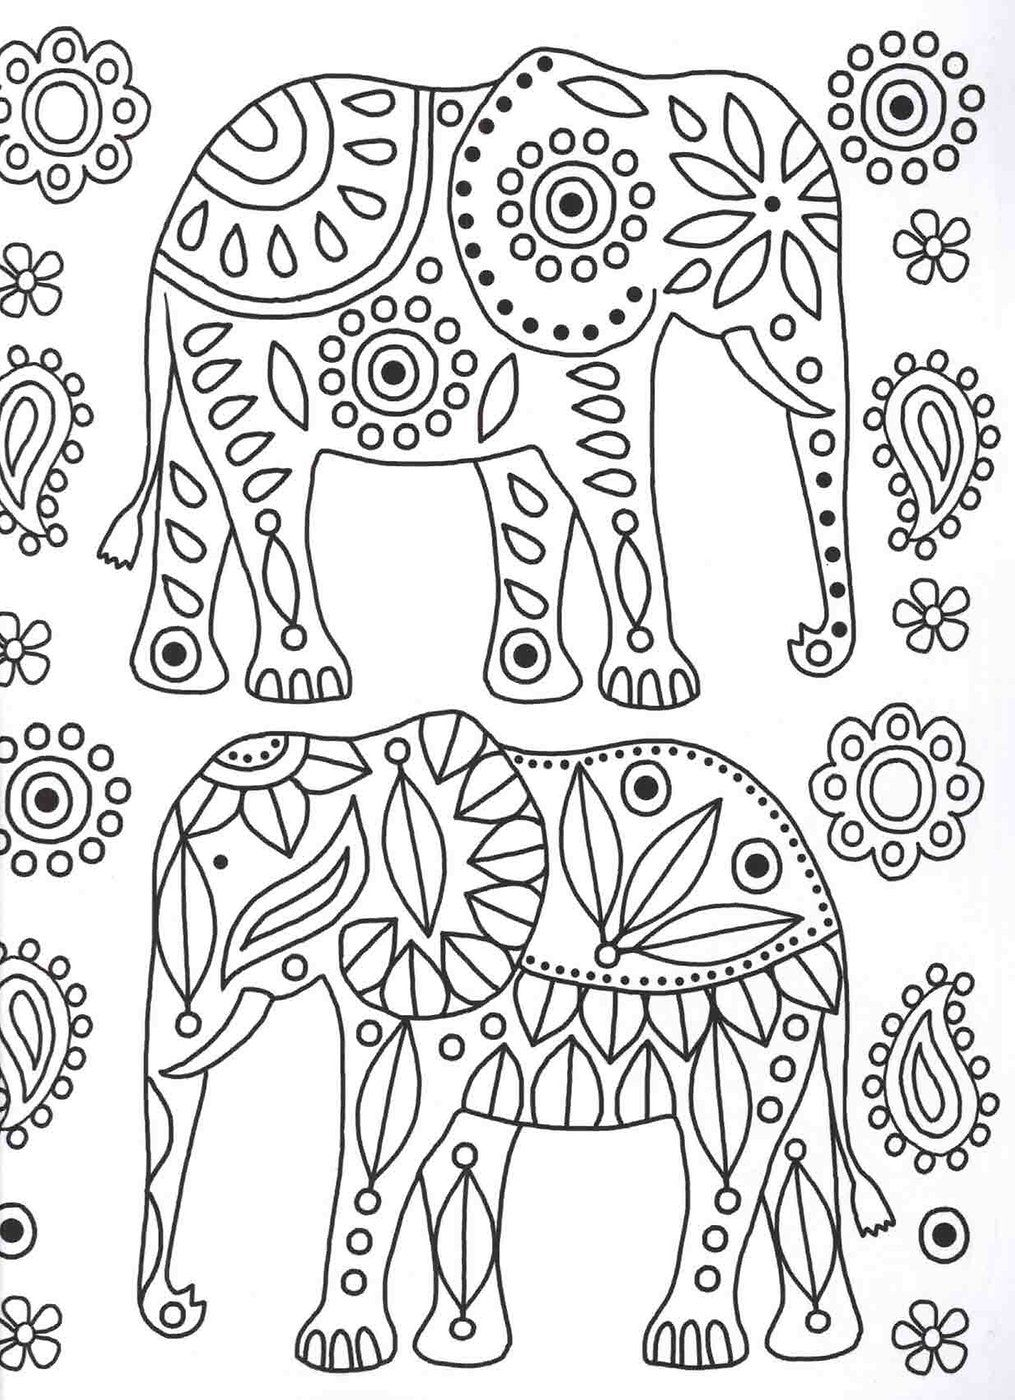 Elephants Colouring Page Patterns Coloring Book Patrones Para